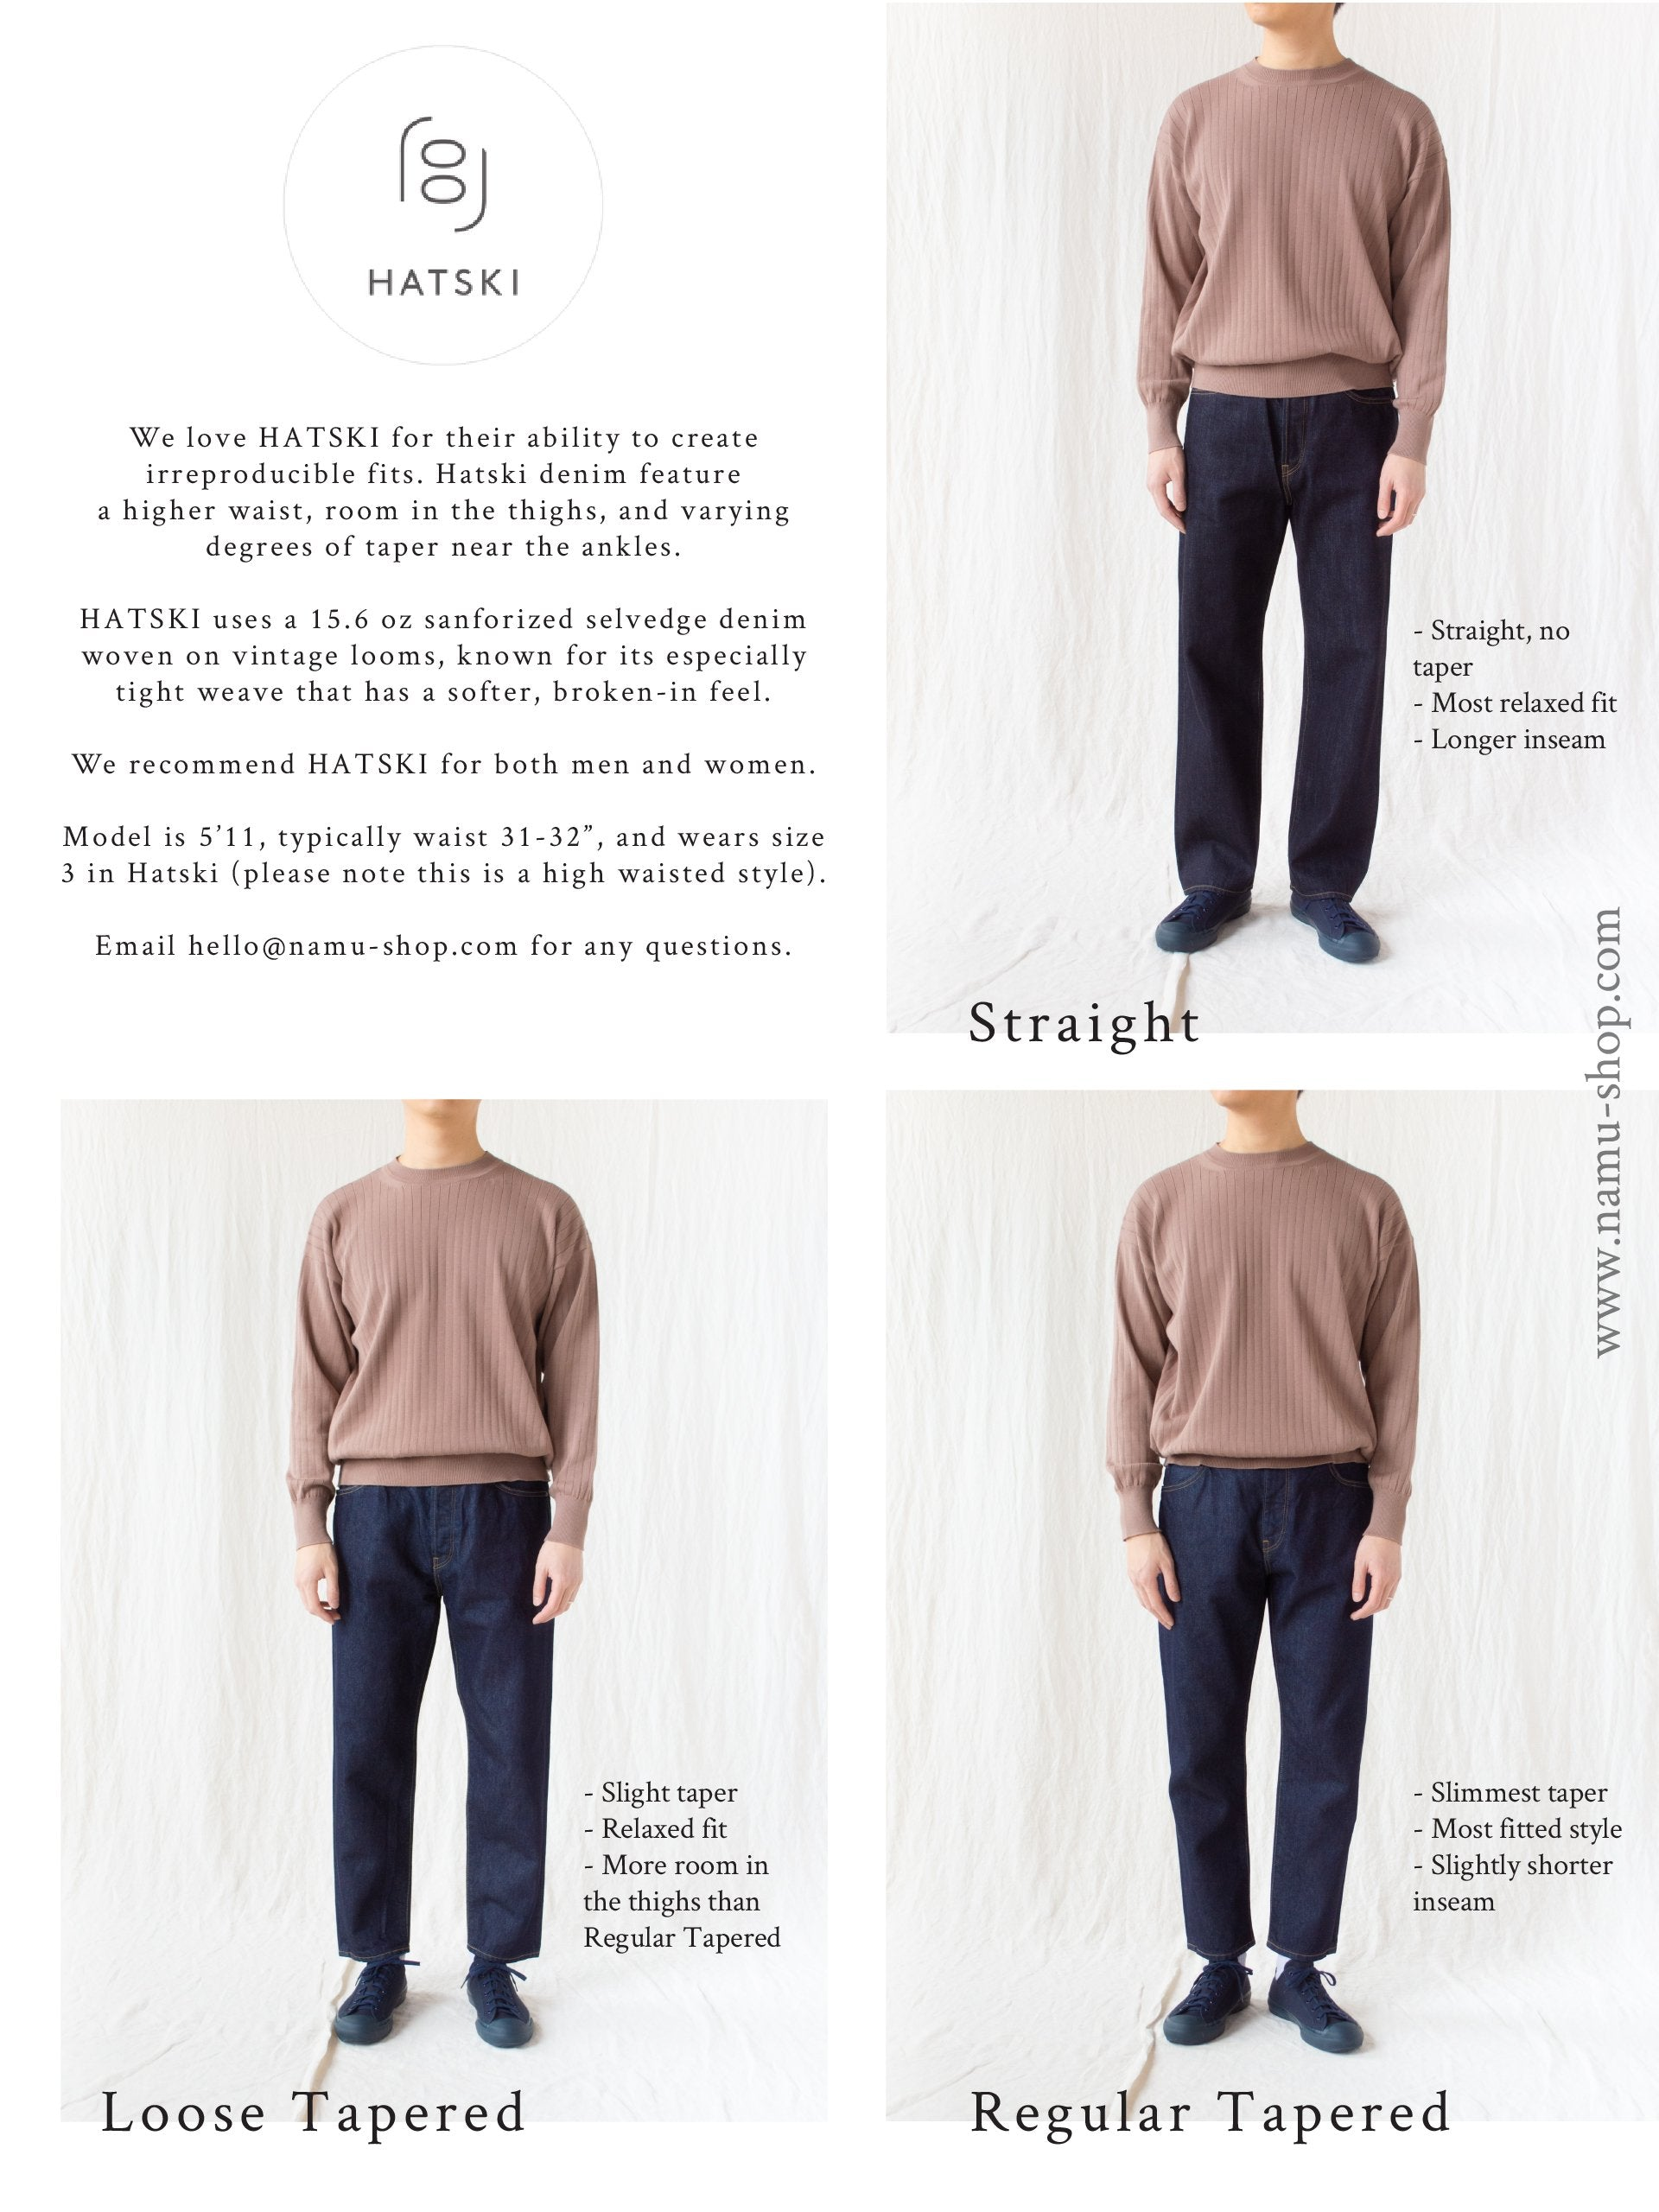 Namu Shop - Hatski Straight Denim - One Wash